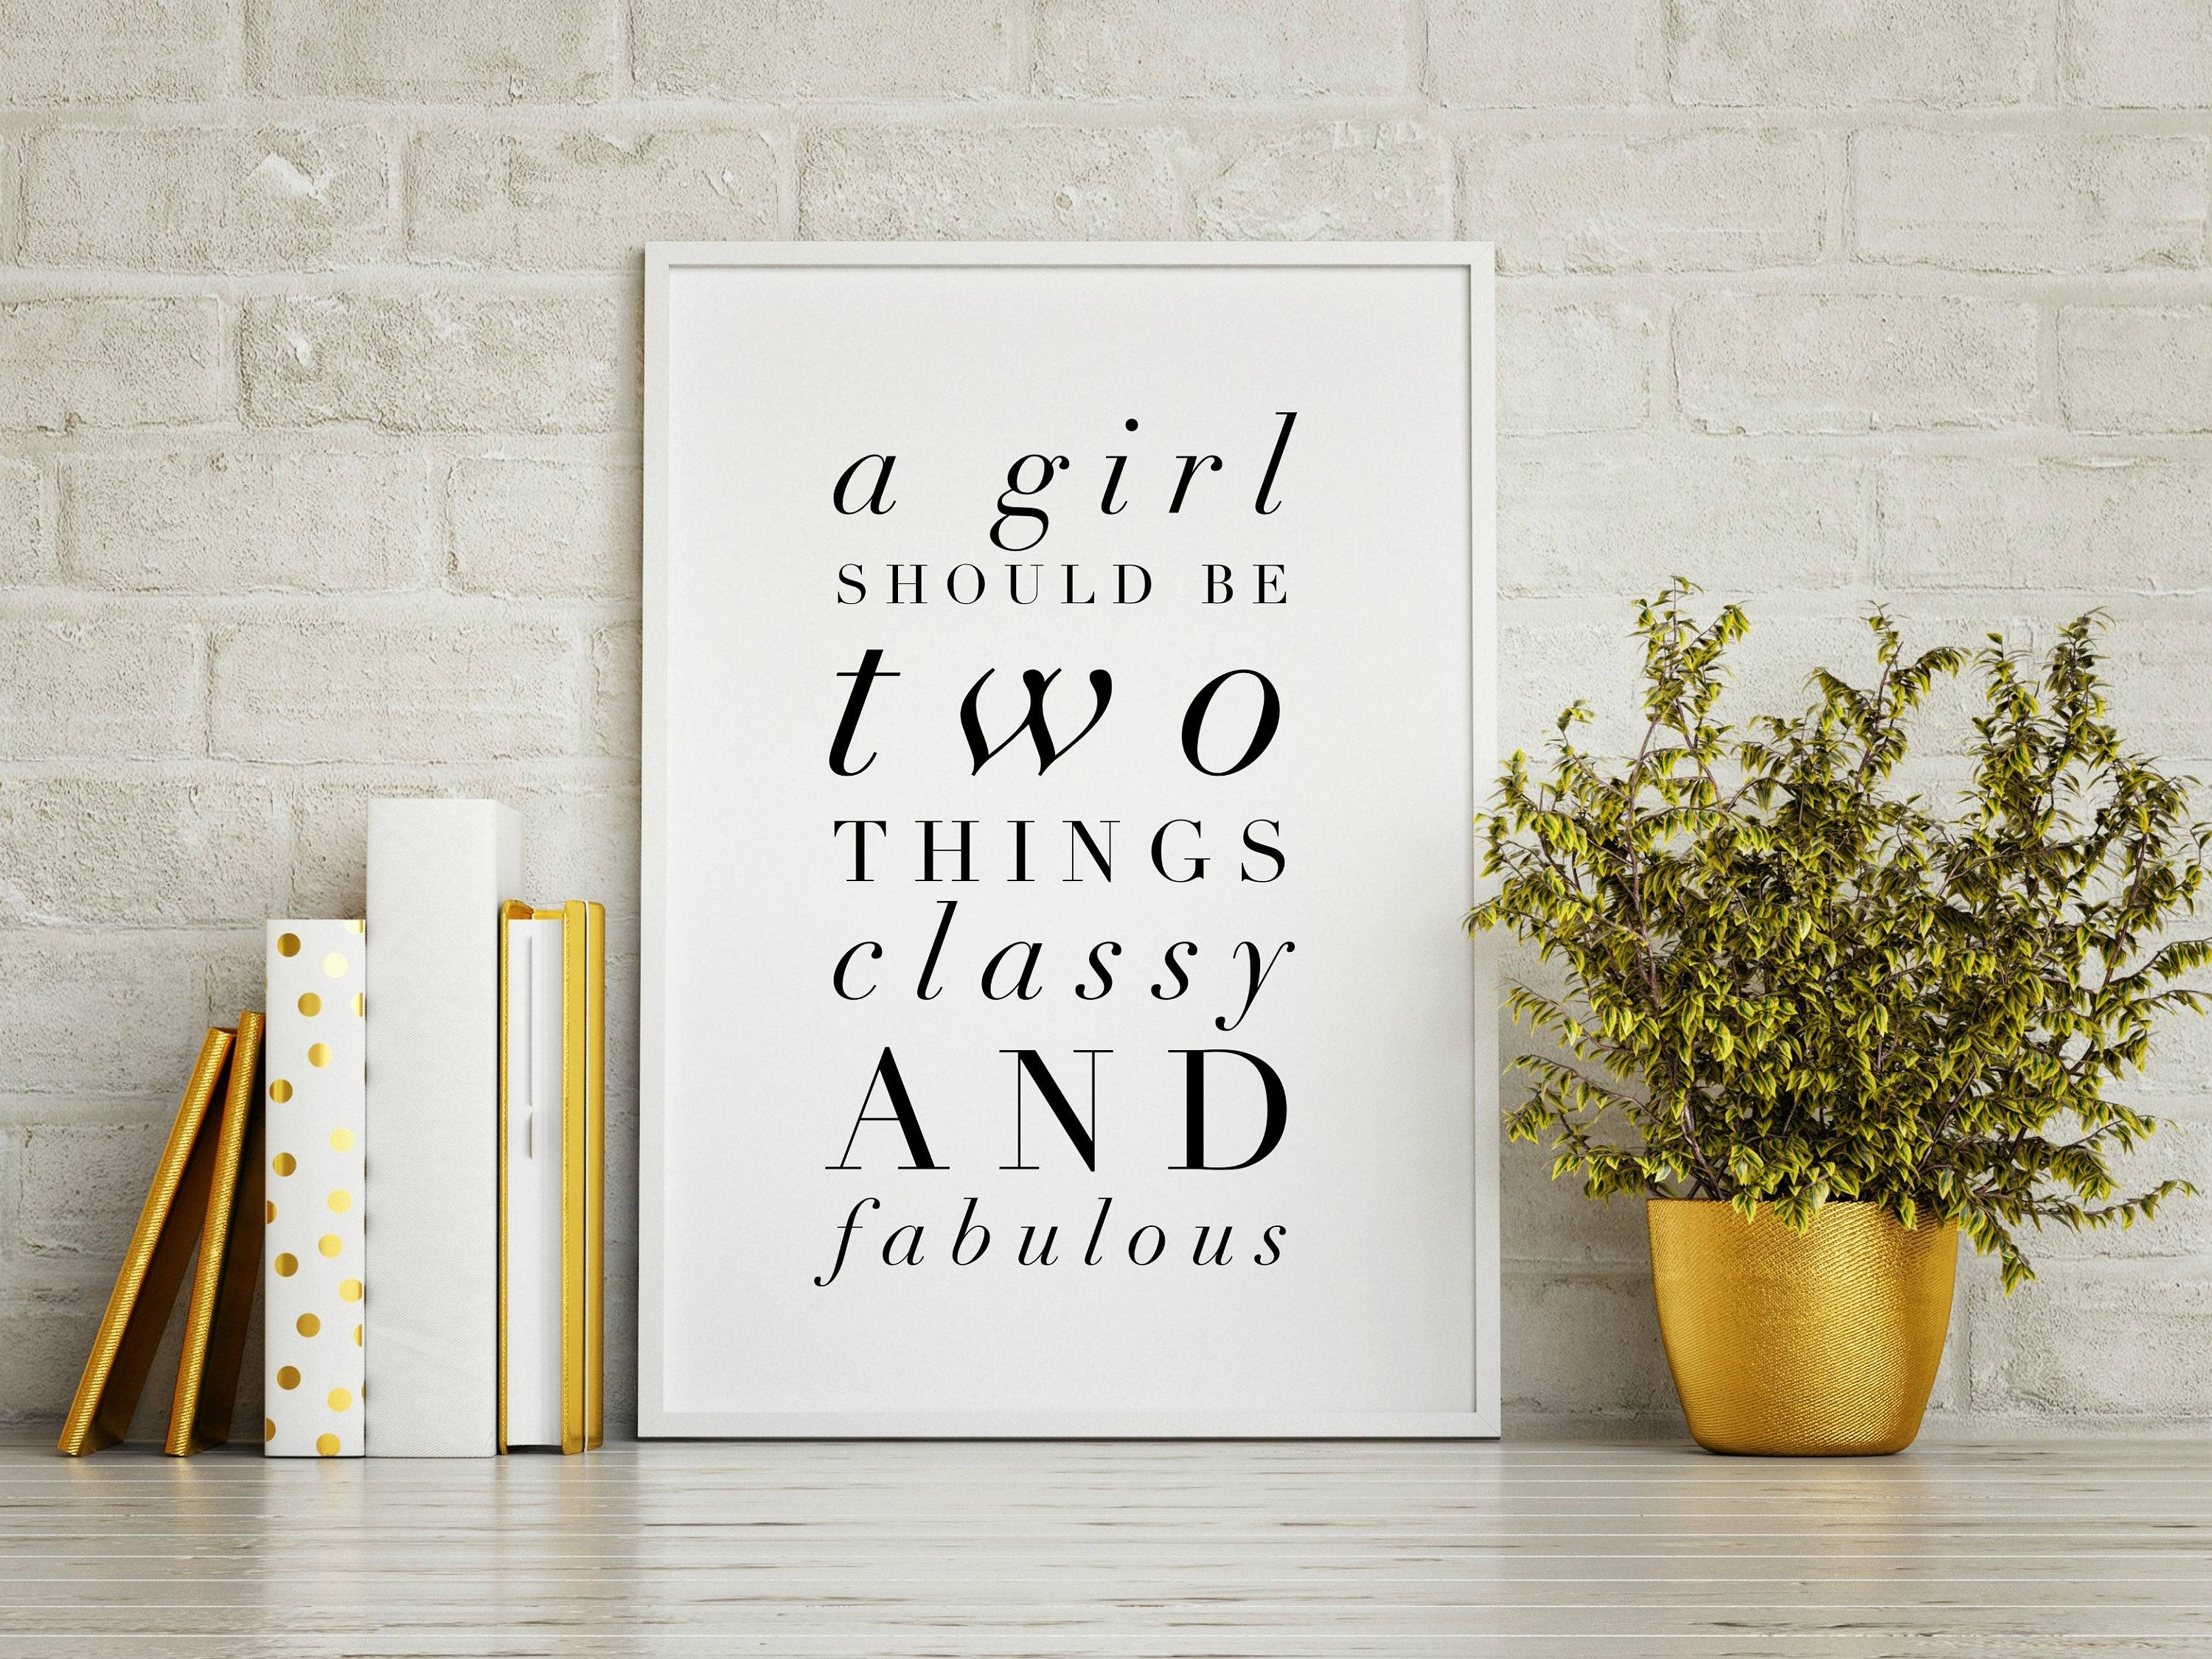 Classy And Fabulous – Coco Chanel Quote, High Fashion Wall Art With Newest Coco Chanel Wall Stickers (View 10 of 30)